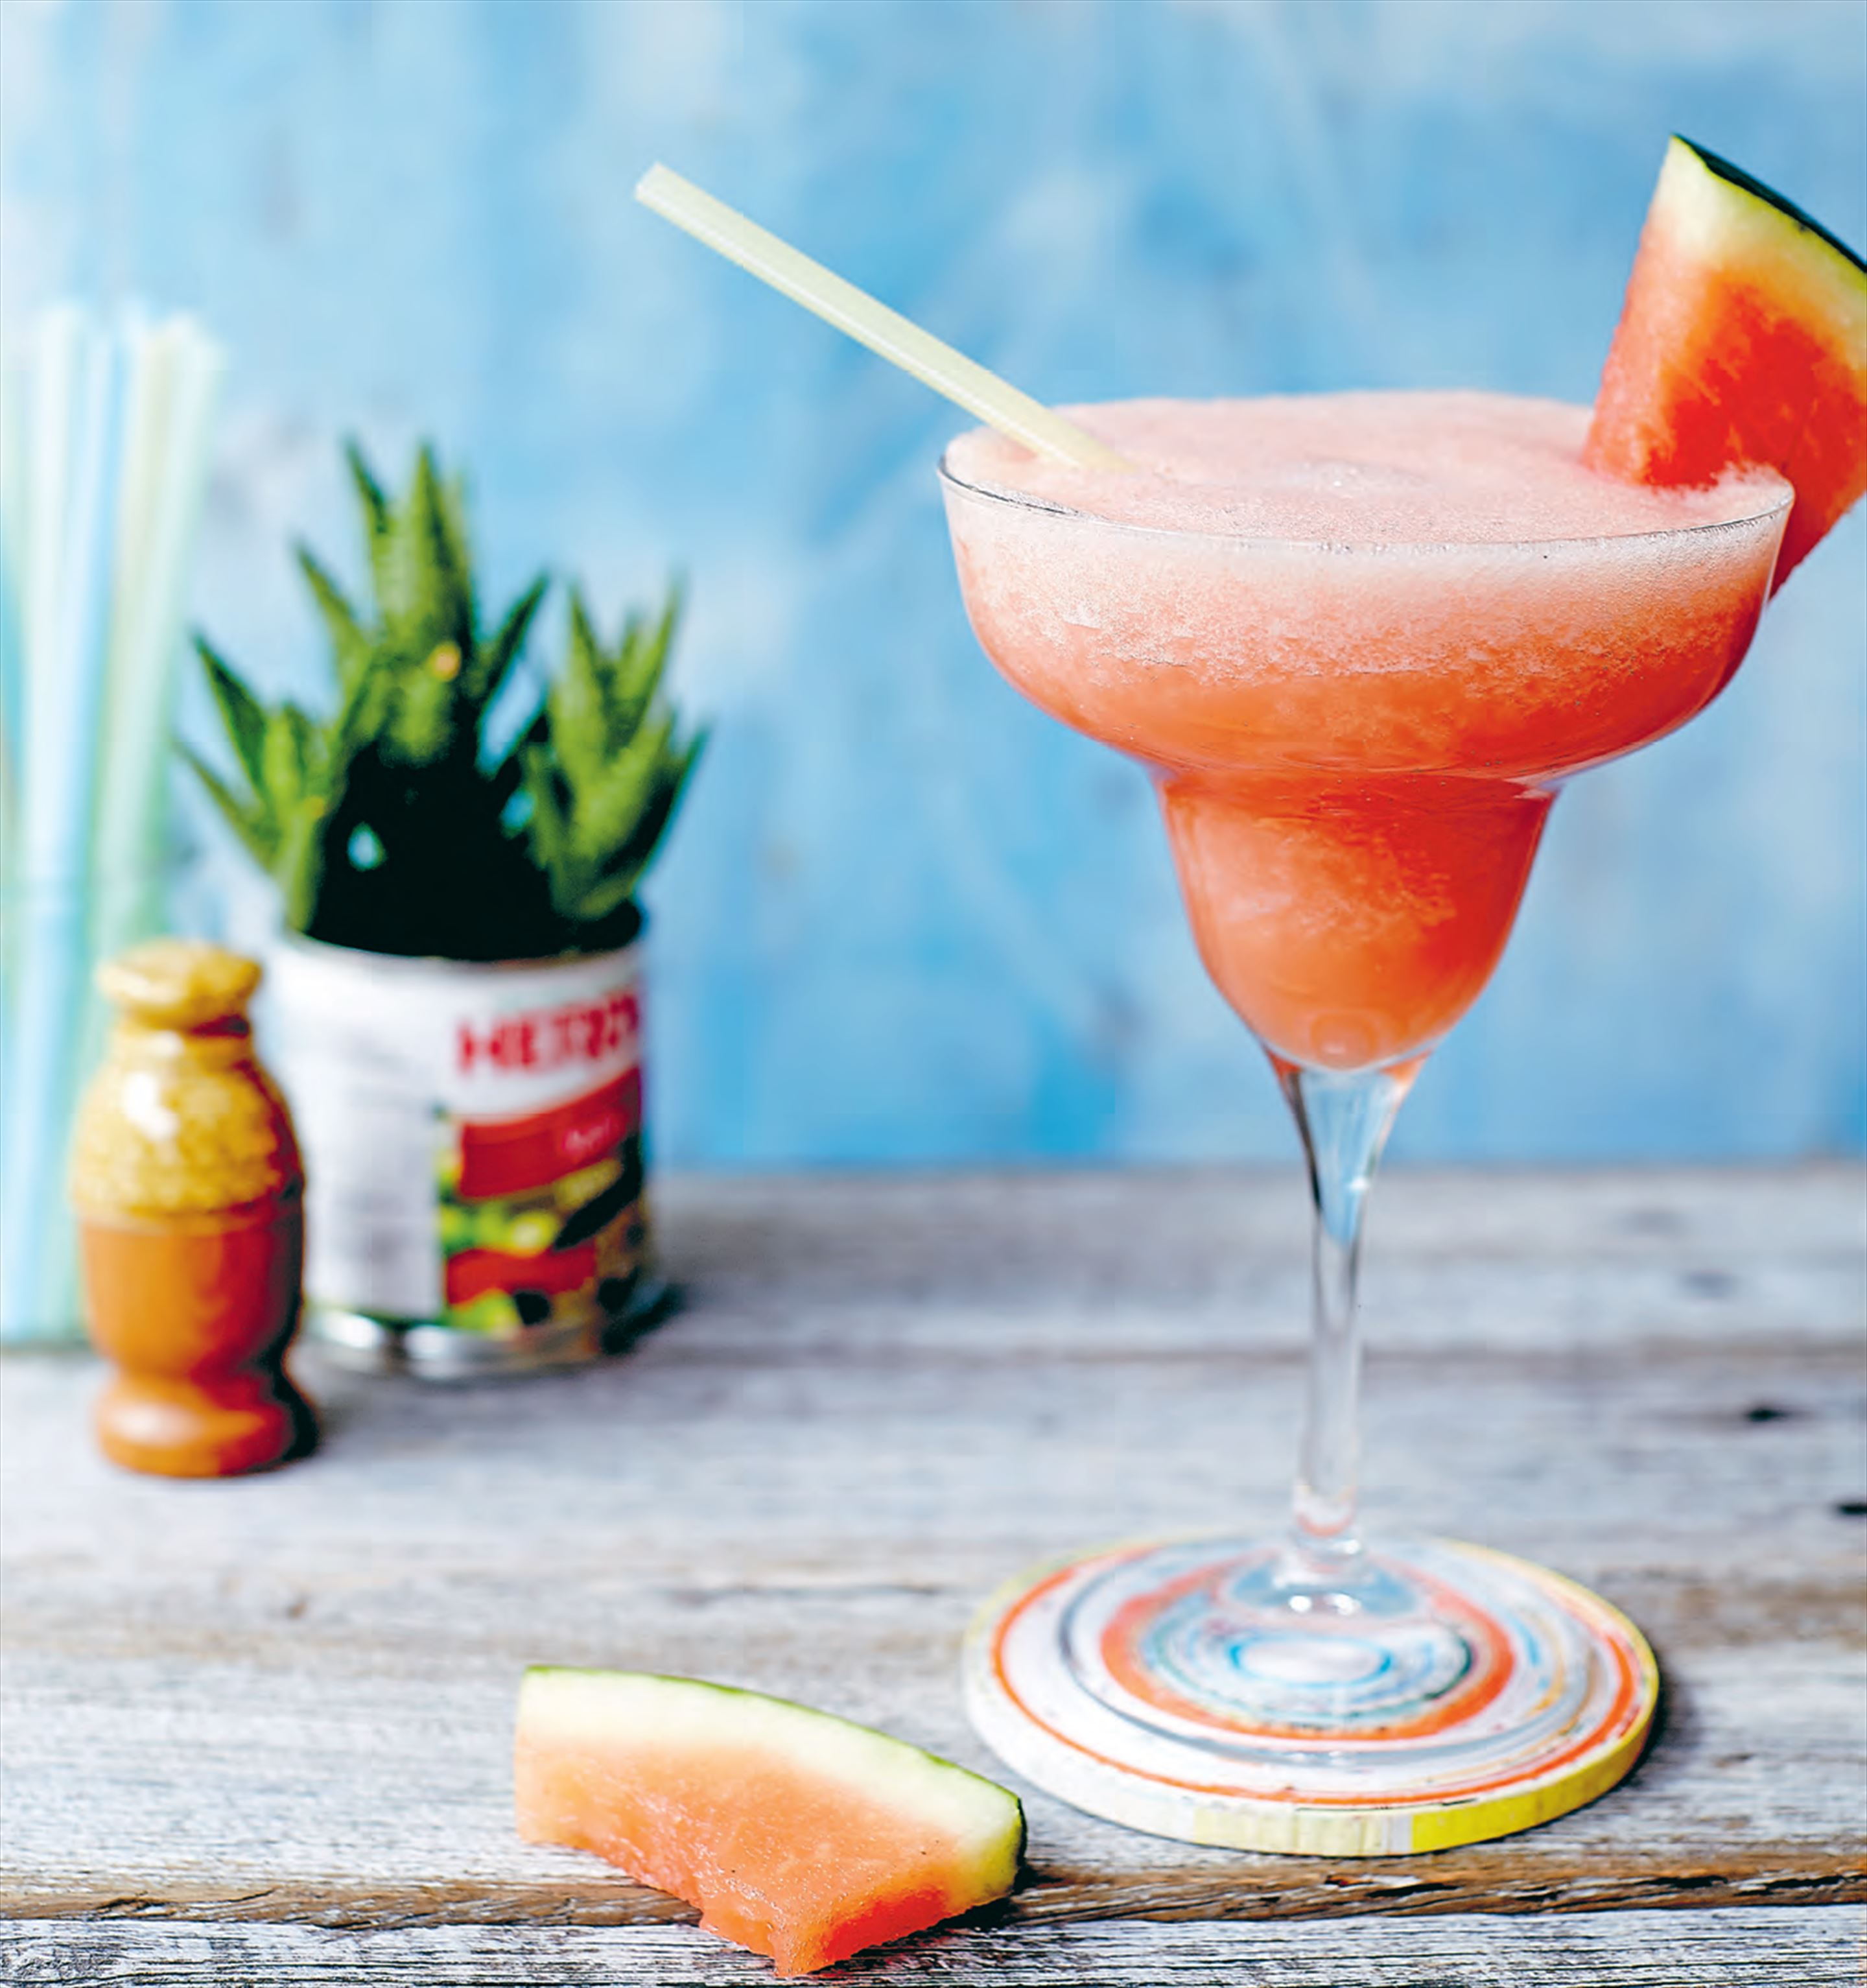 Watermelon margarita